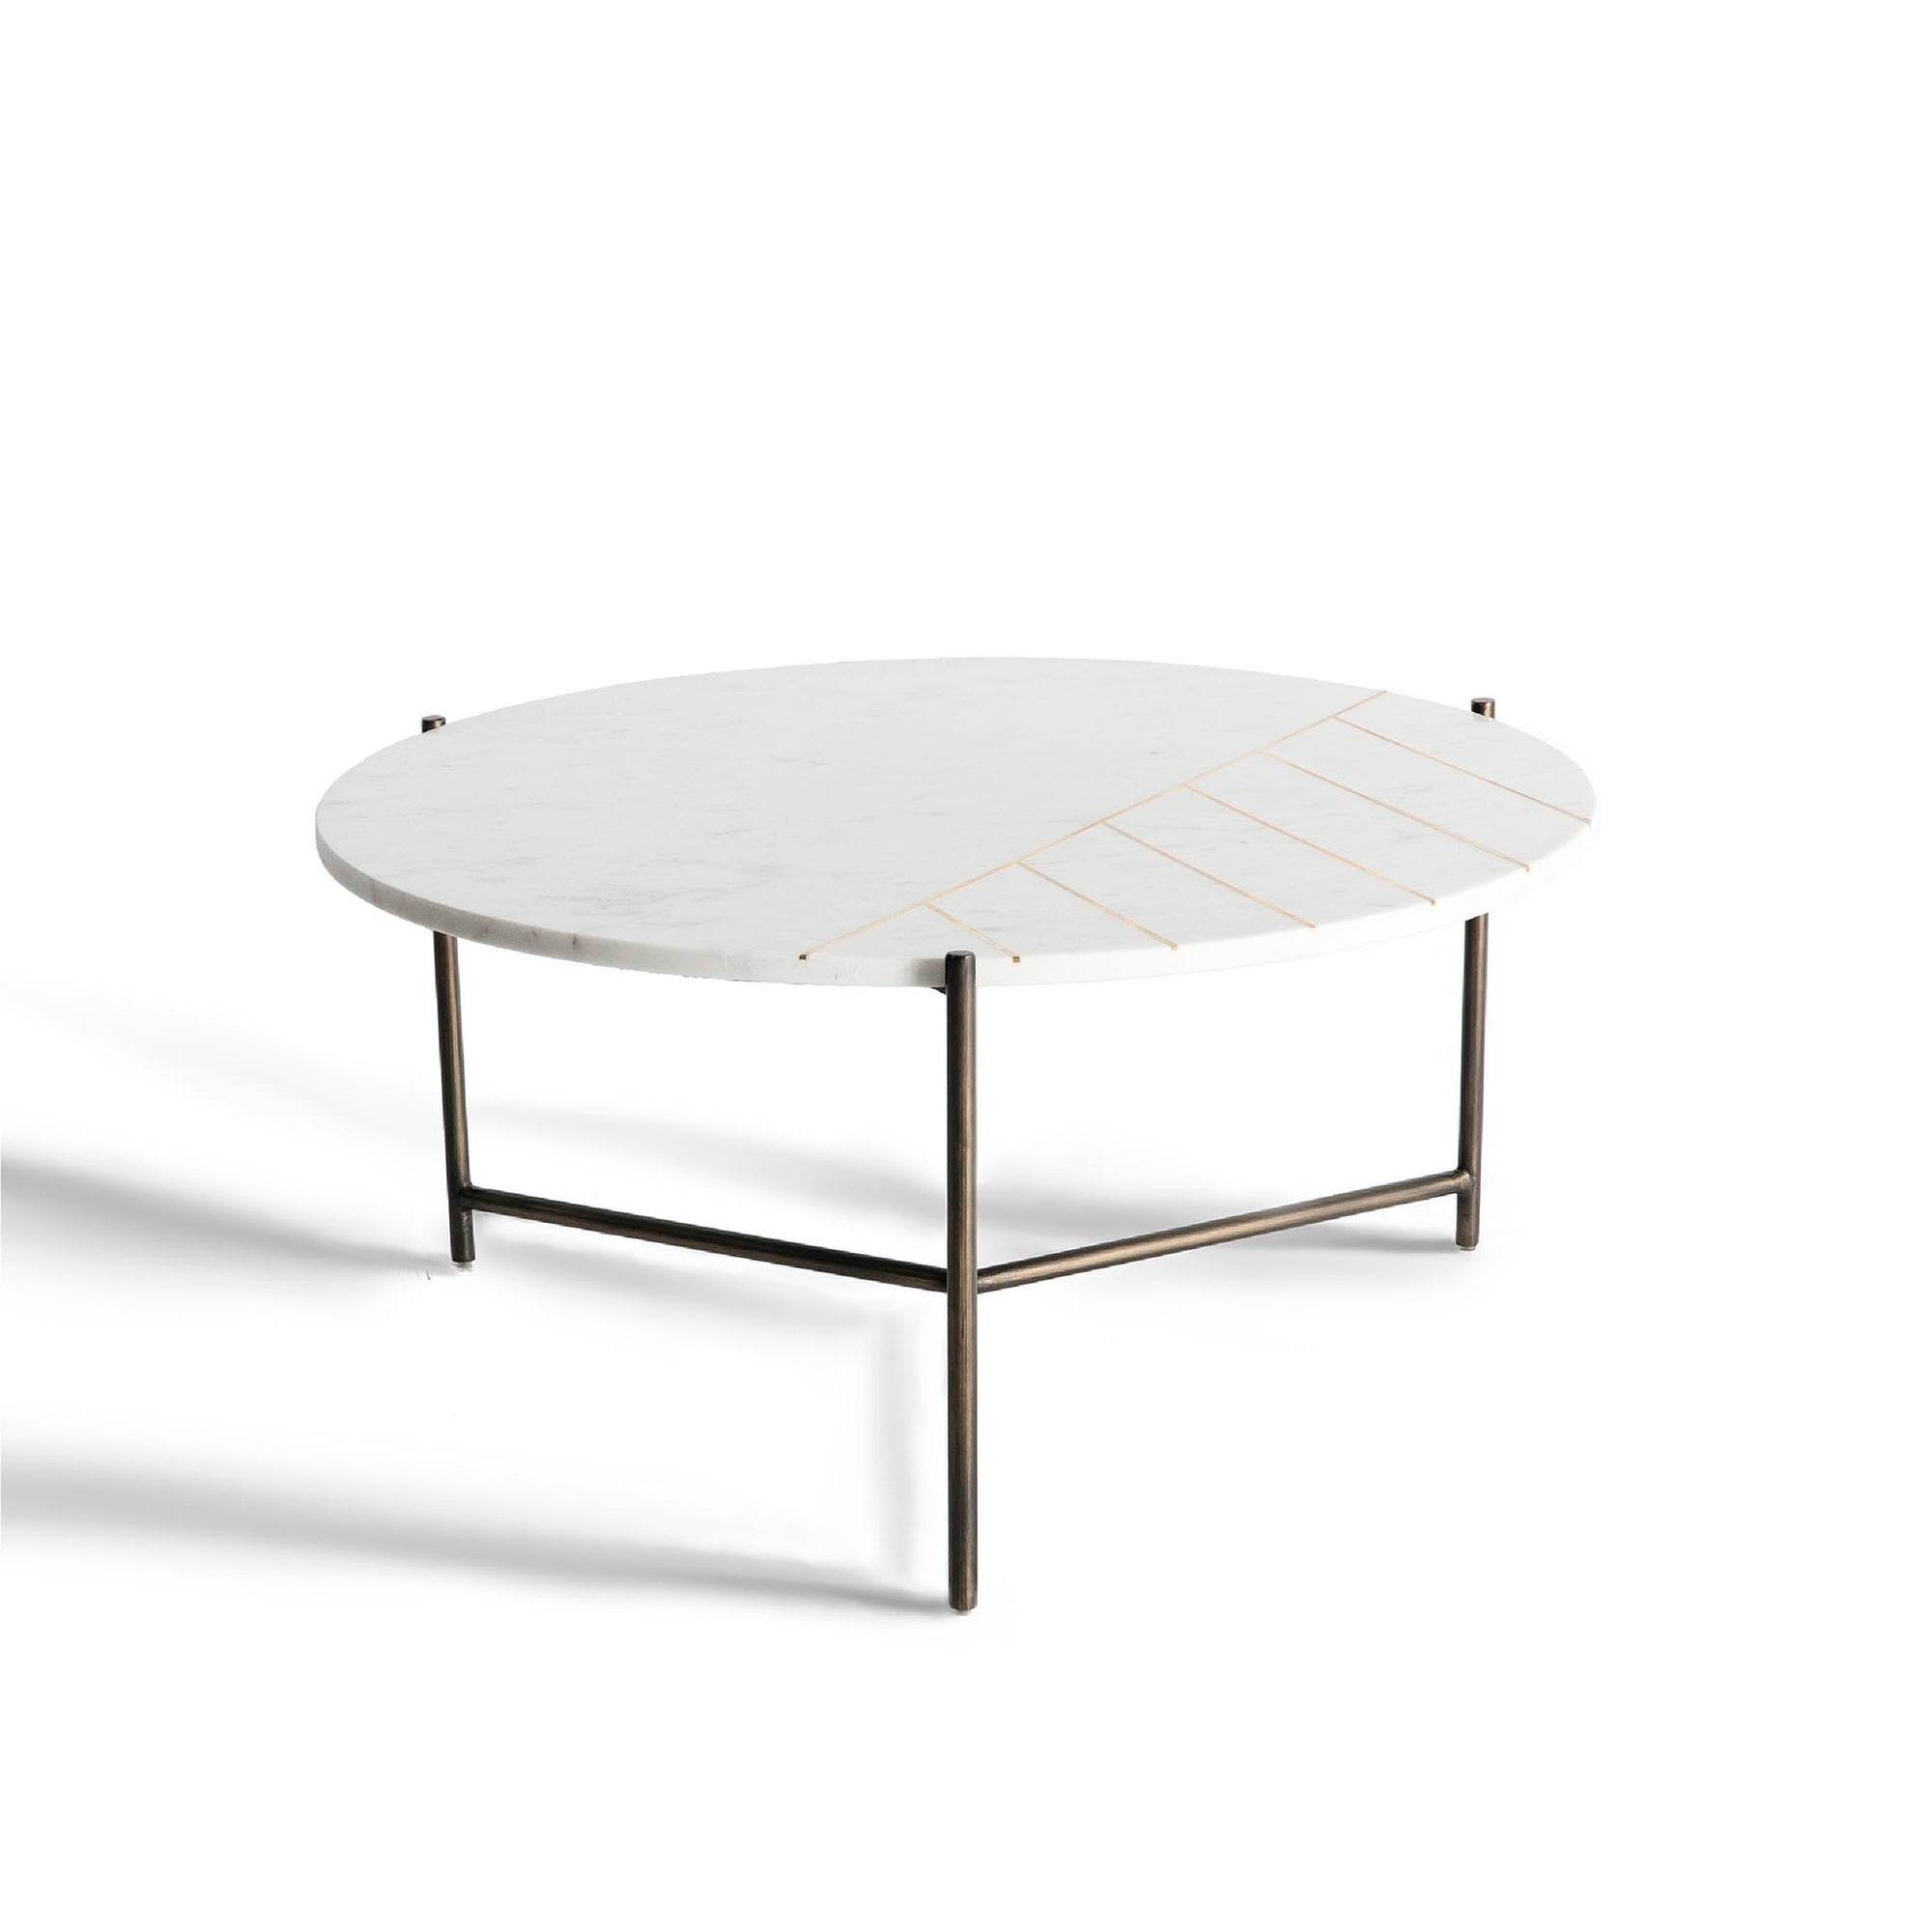 Kandla White Marble Top Coffee Table with Brass Inlay by Roseland Furniture